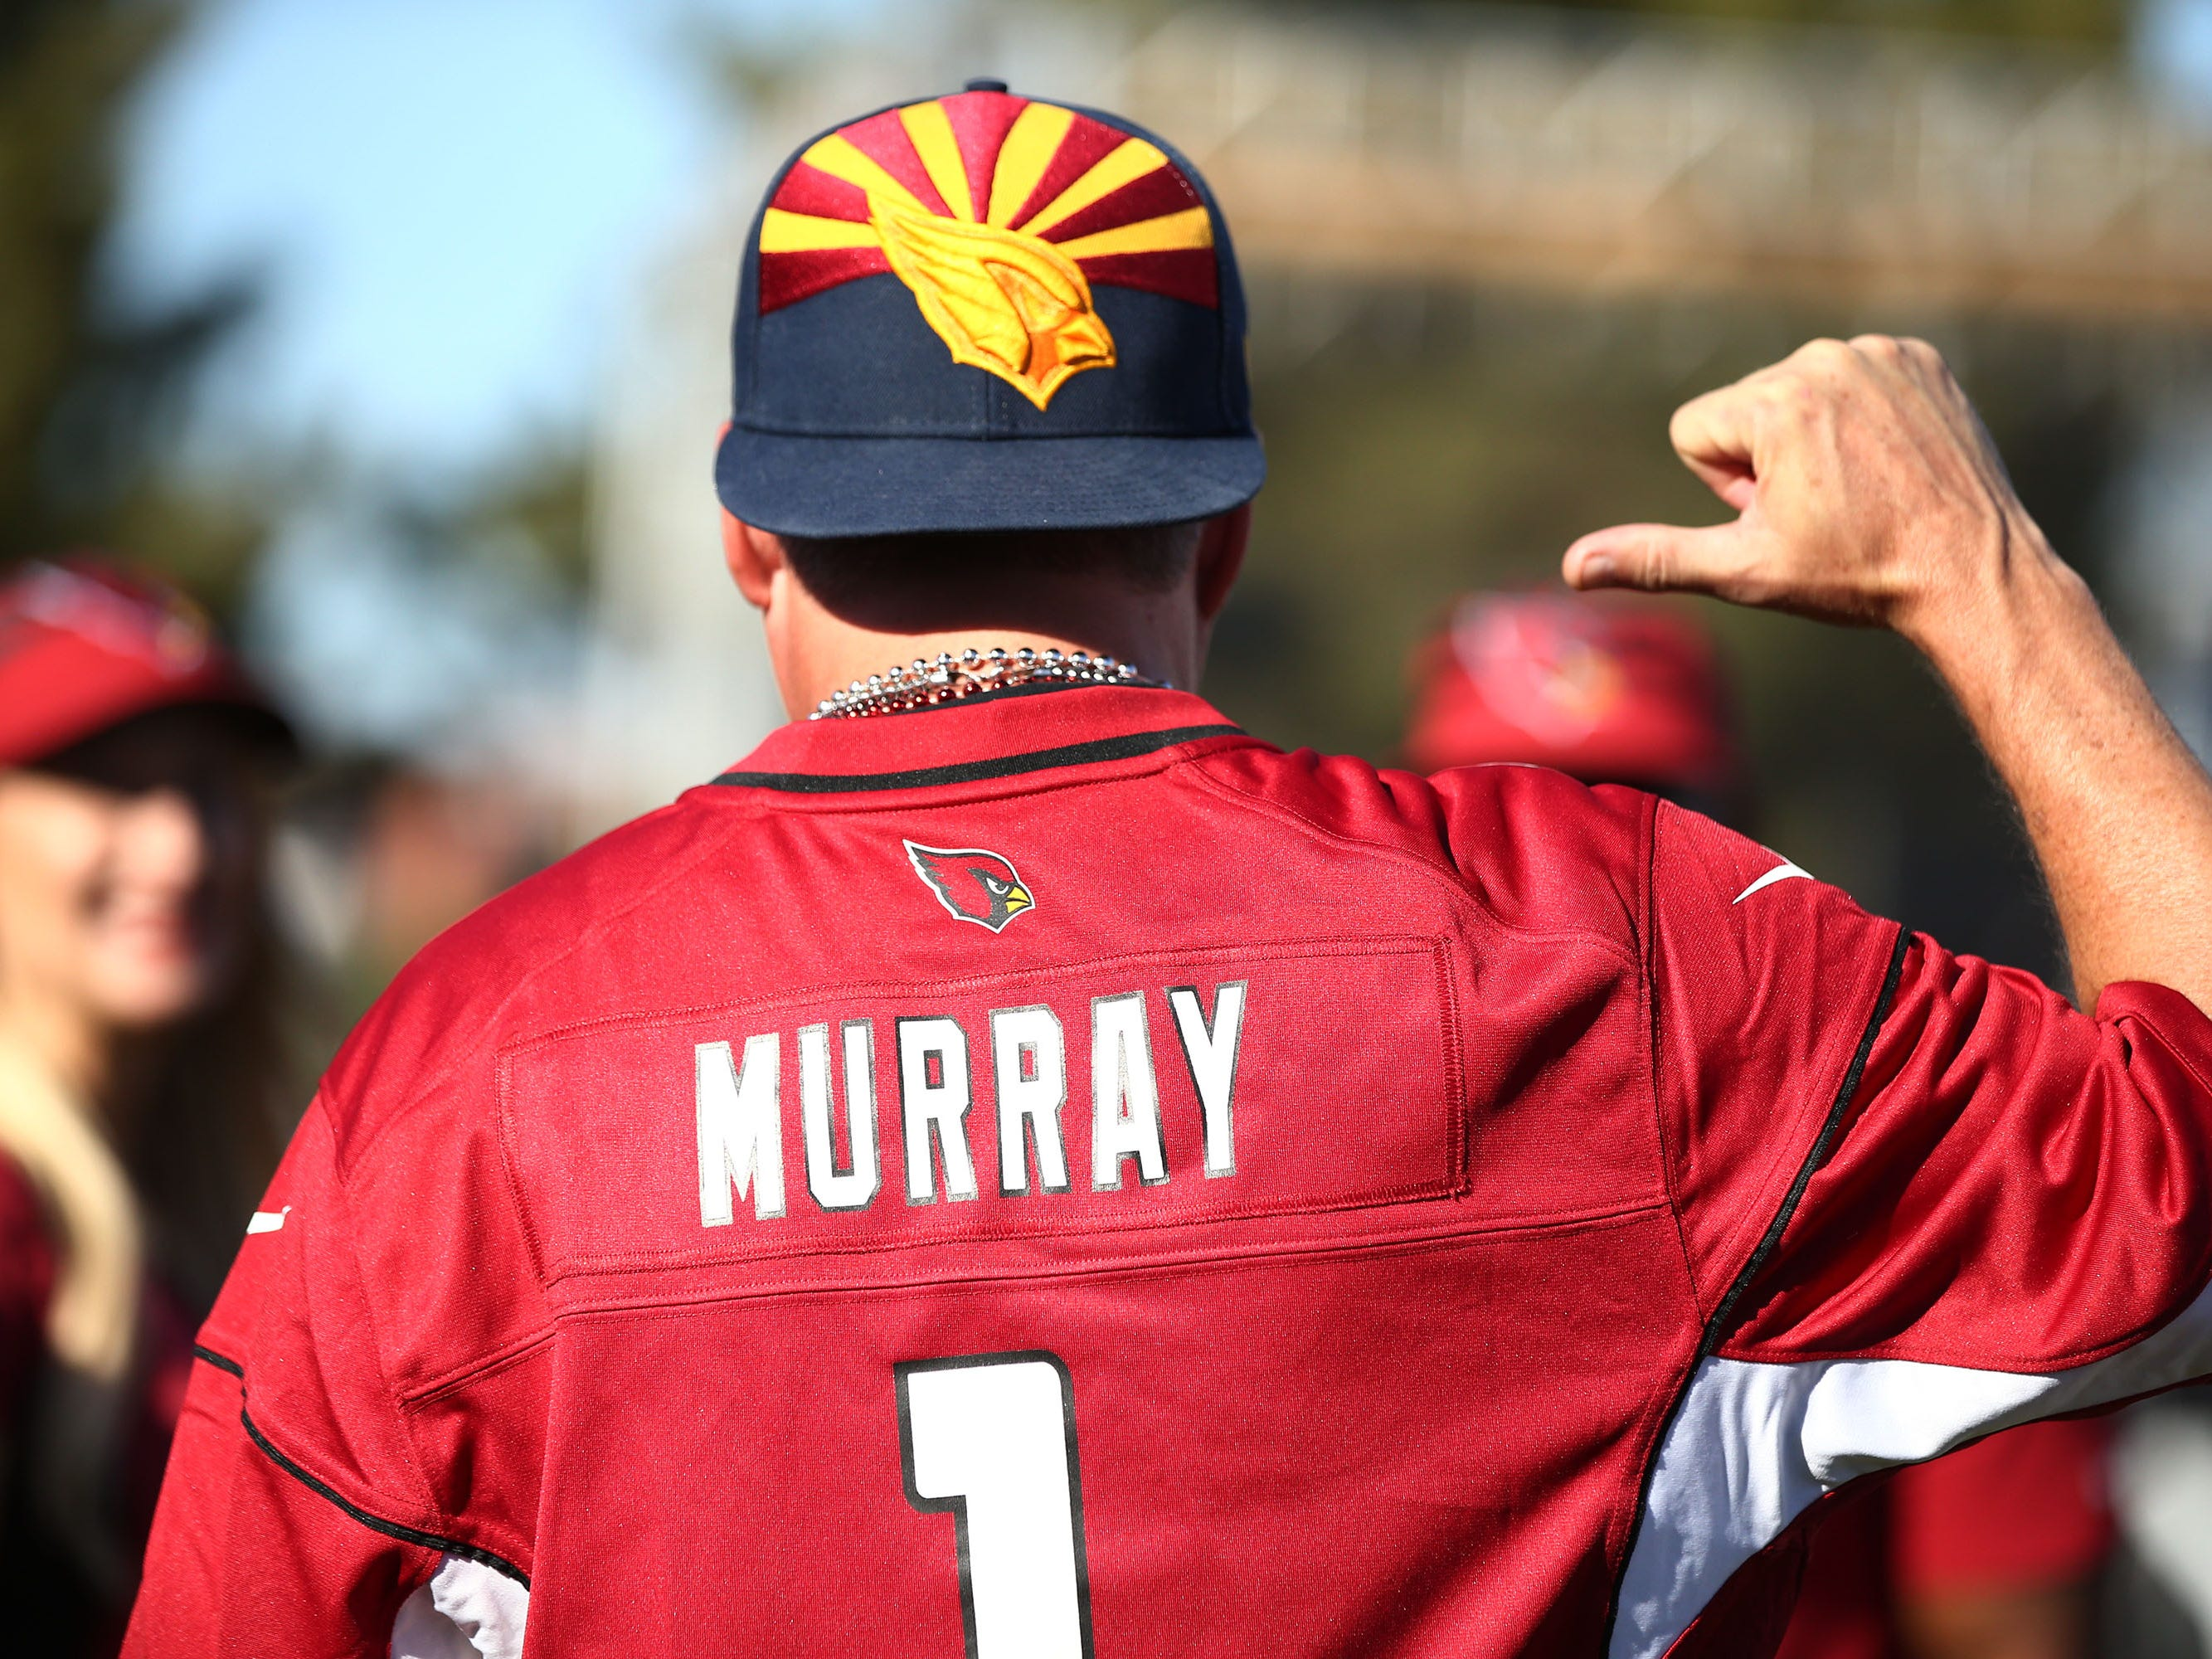 Eric Polansky of Cave Creek, Ariz., wears a Murray #1 jersey during the NFL Draft watch party at State Farm Stadium on Apr. 25, 2019 in Glendale, Ariz.